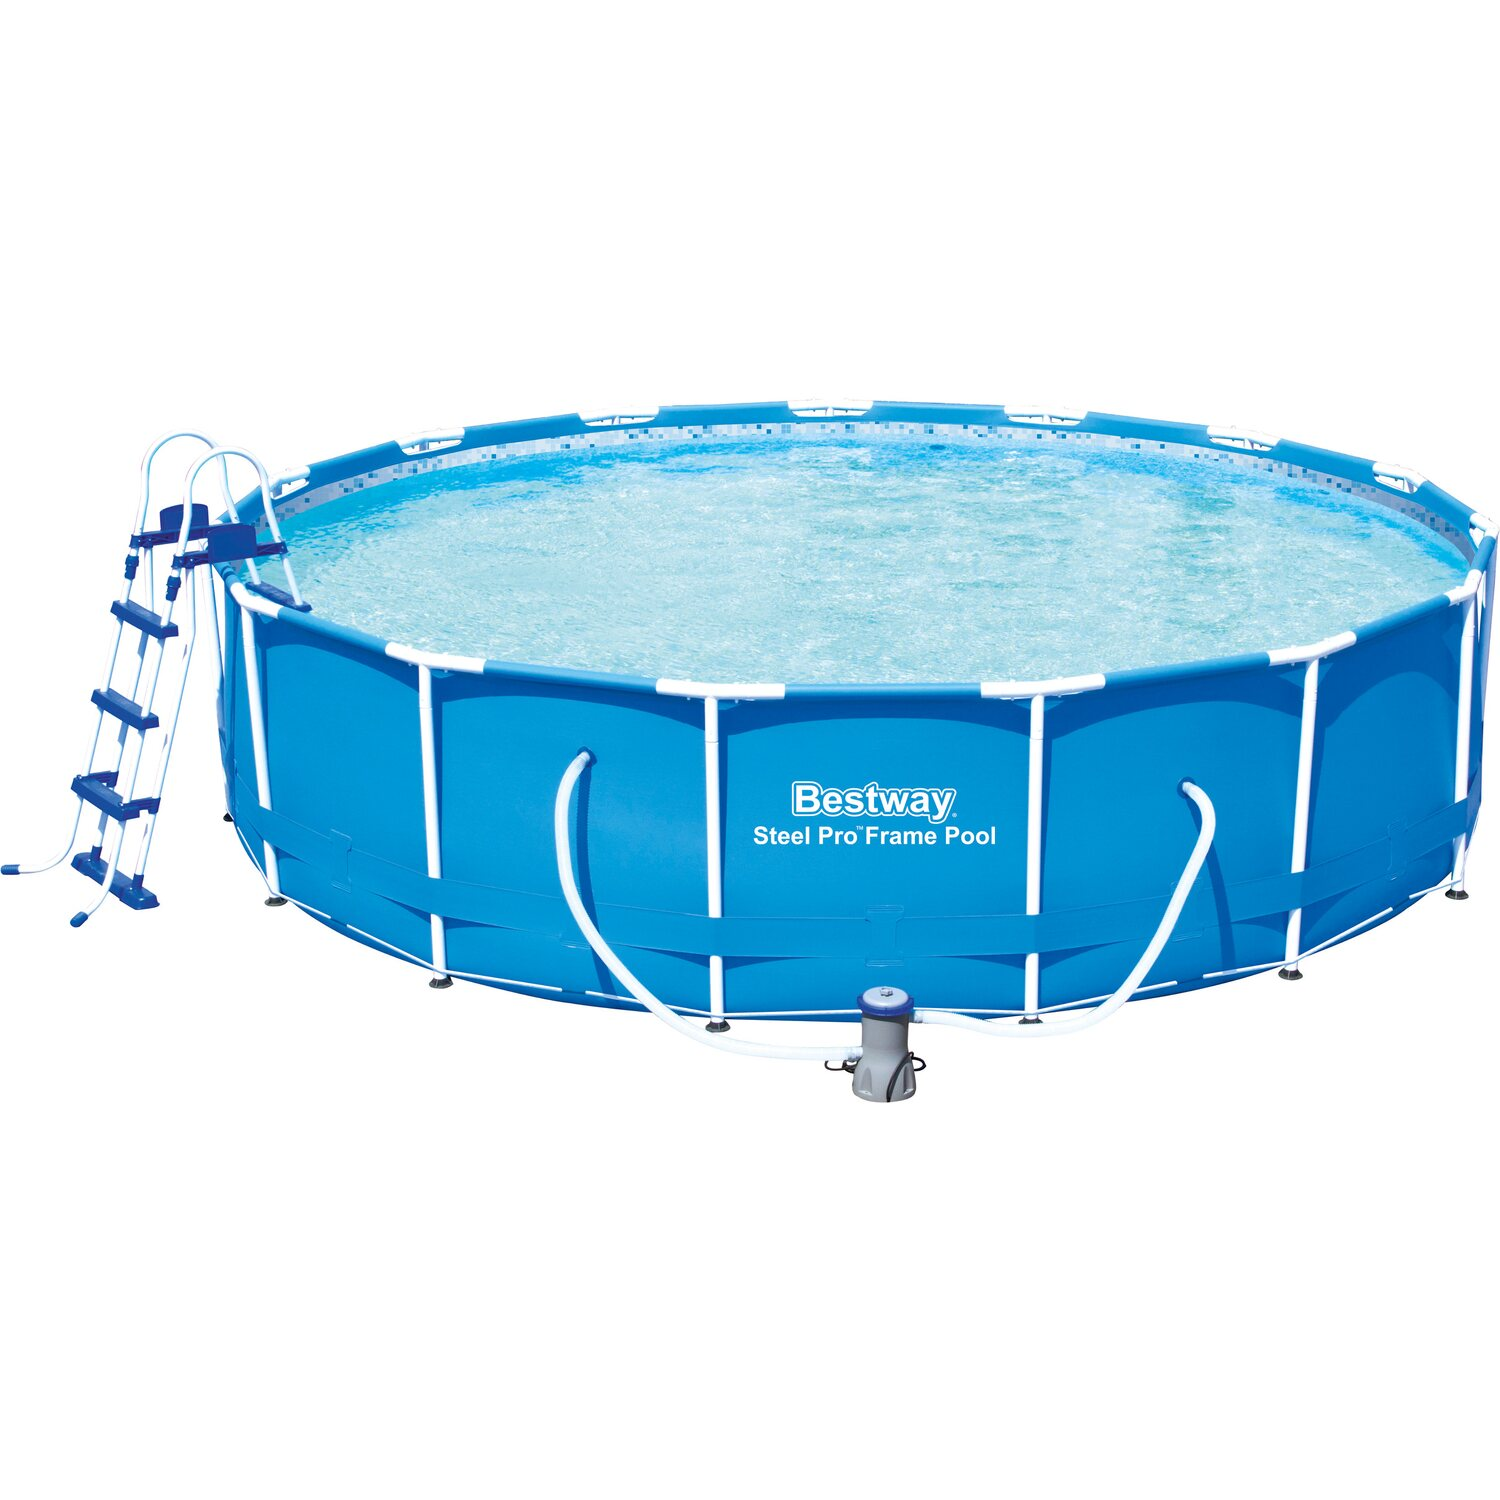 Bestway stahlrahmen pool set 457 cm x 107 cm kaufen bei obi for Obi solarplane pool